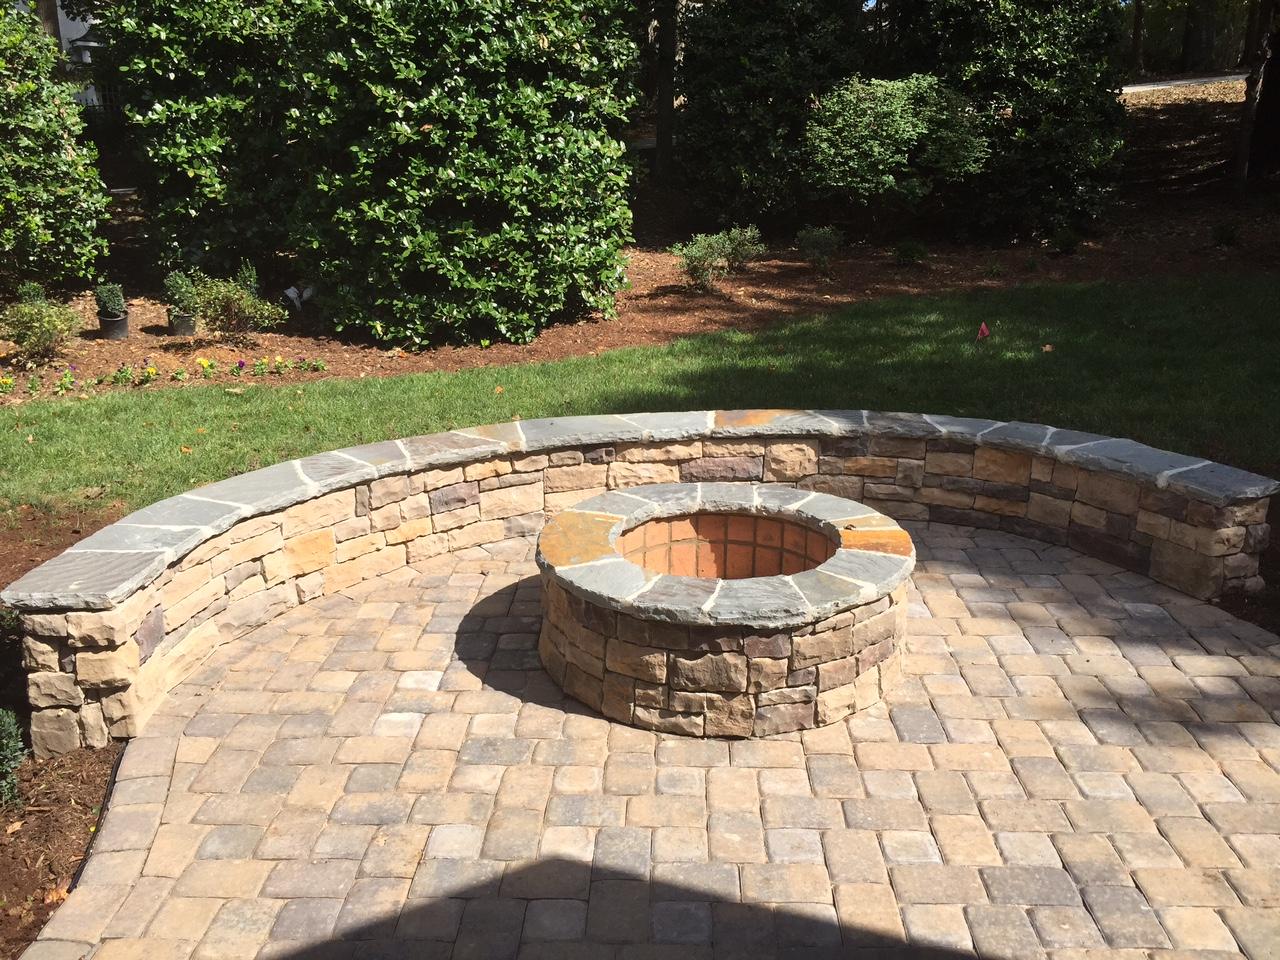 Charlotte outdoor fire pits, Charlotte outdoor fireplace ... on Pavers Patio With Fire Pit id=91750